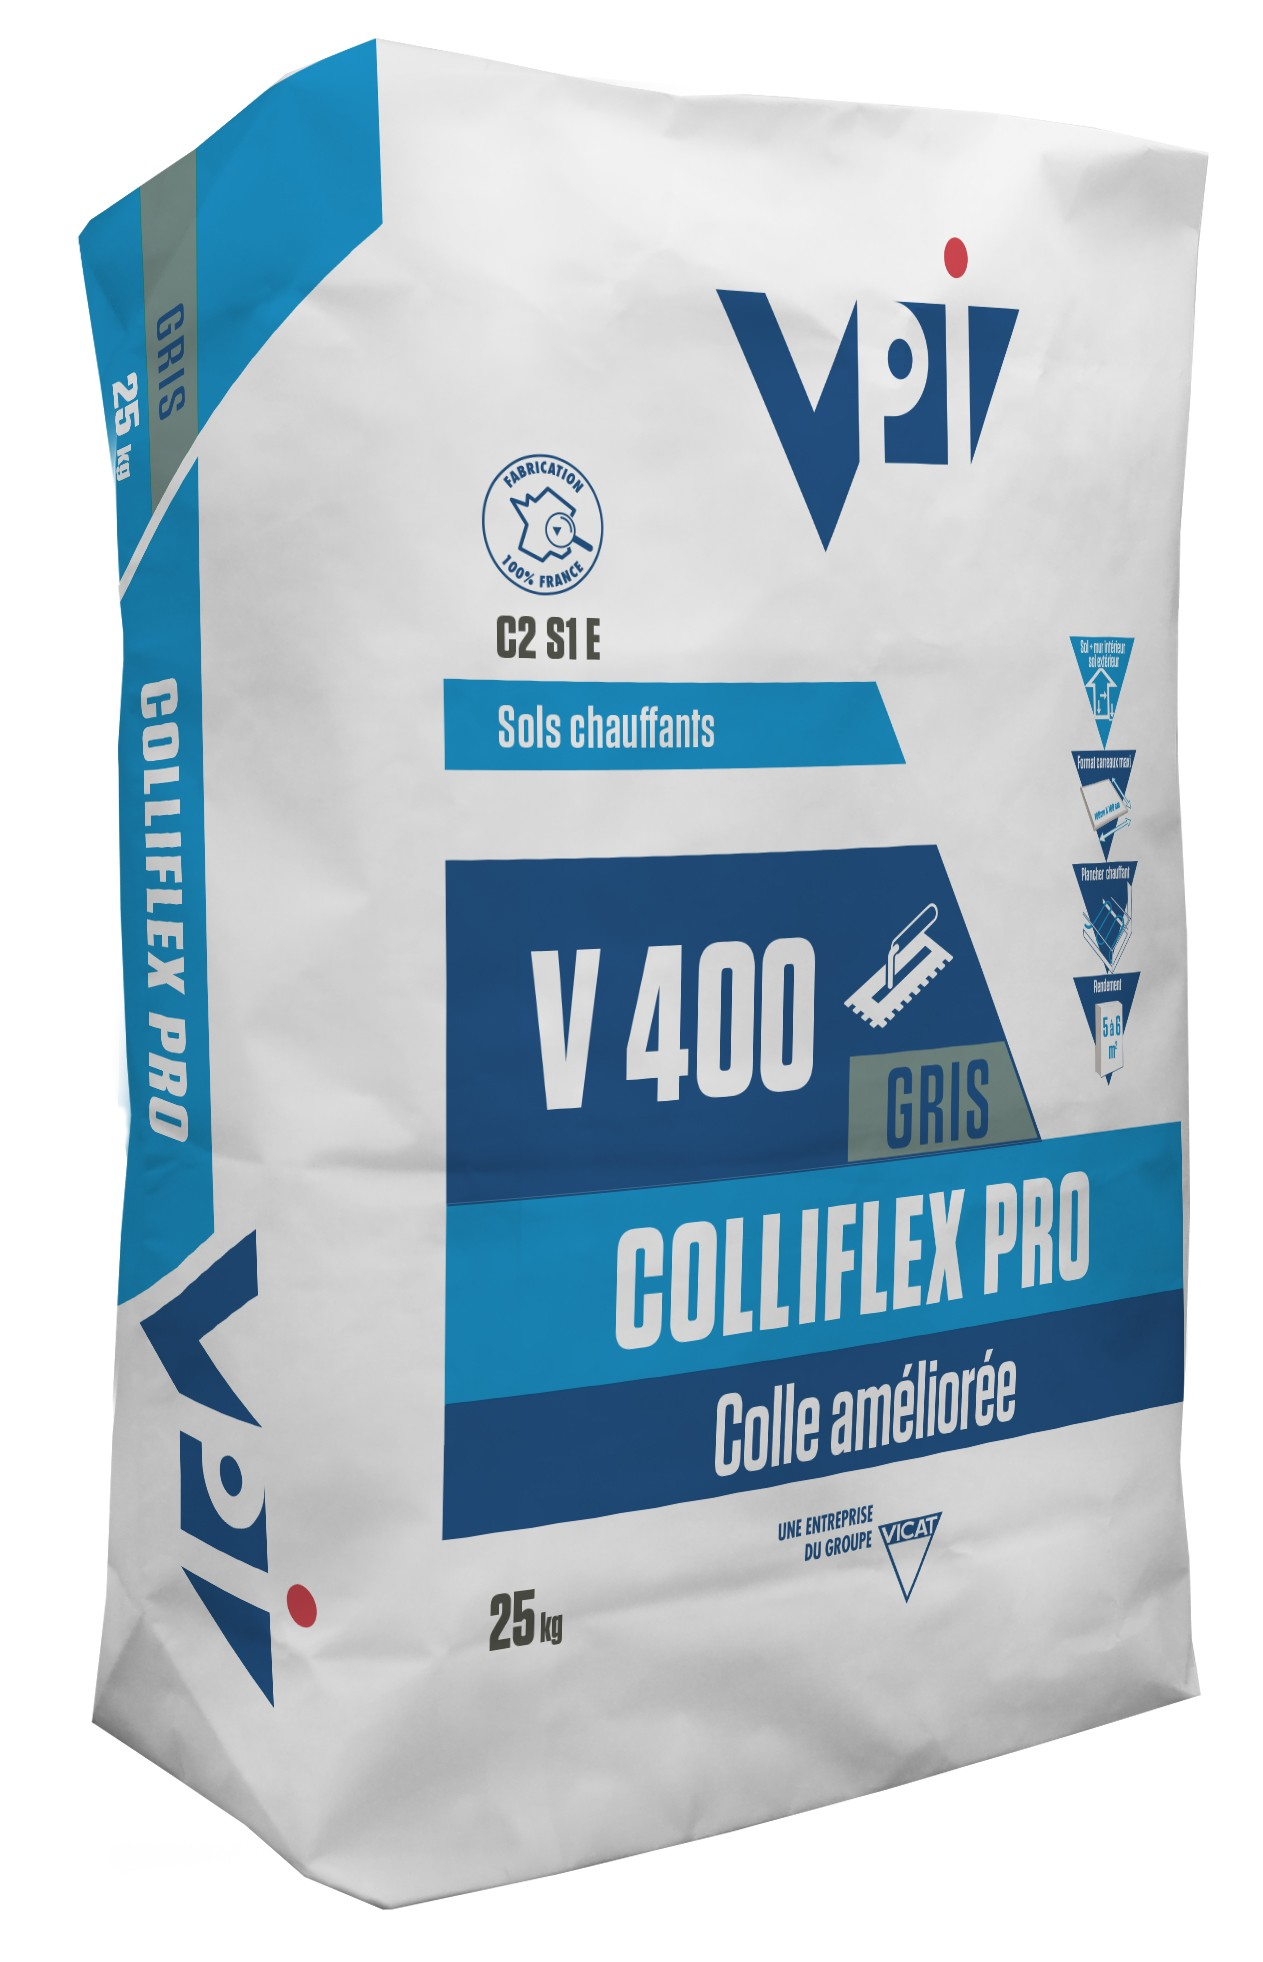 Colle carrelage - COLLIFLEX ECO 25 KG